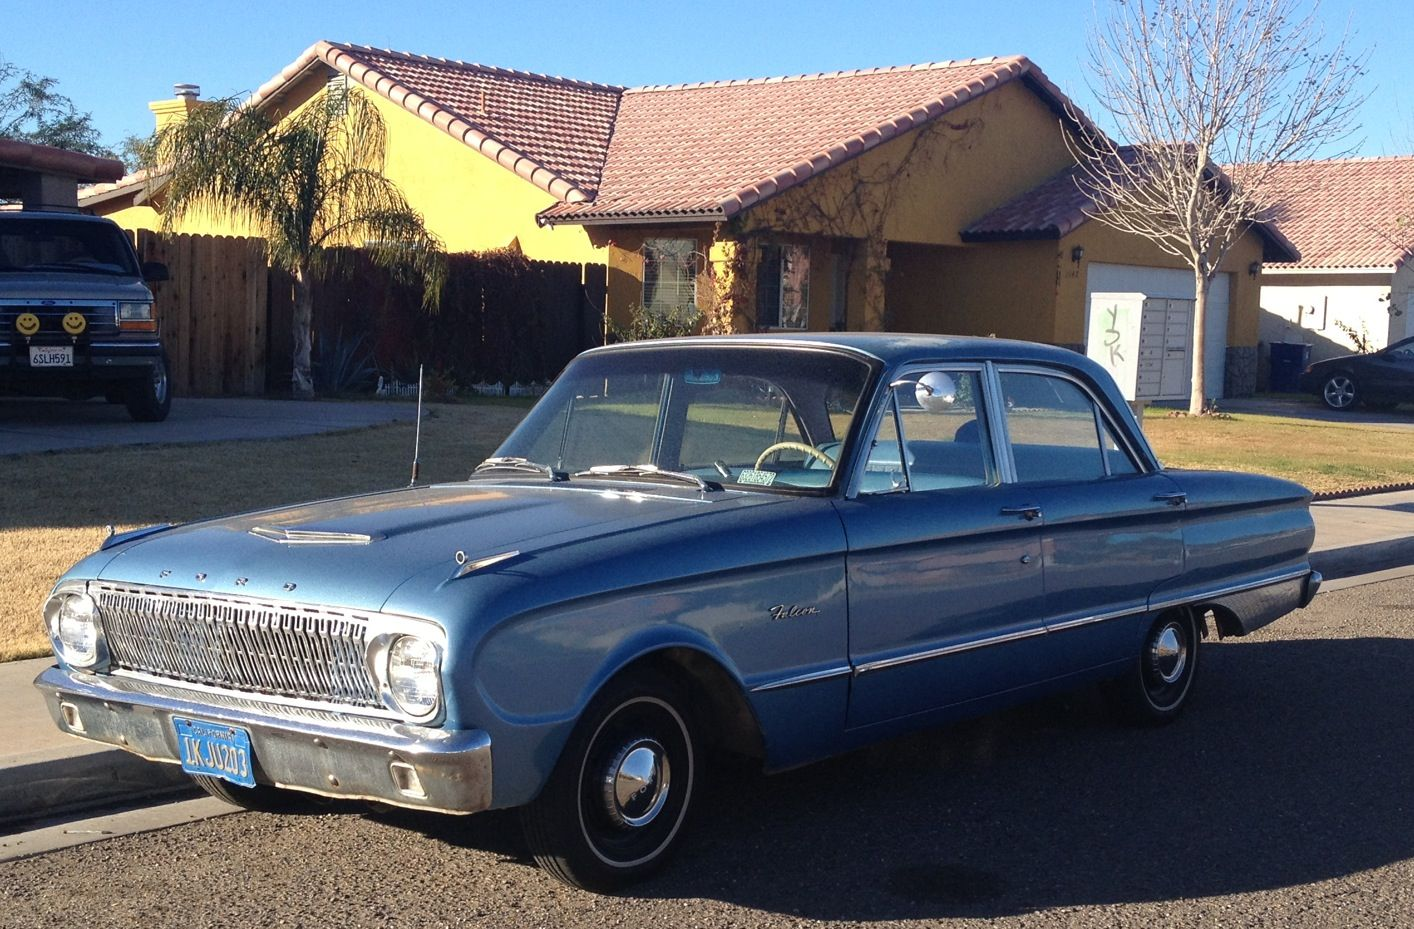 Ford Falcon. Another old original car. This one is for sale.